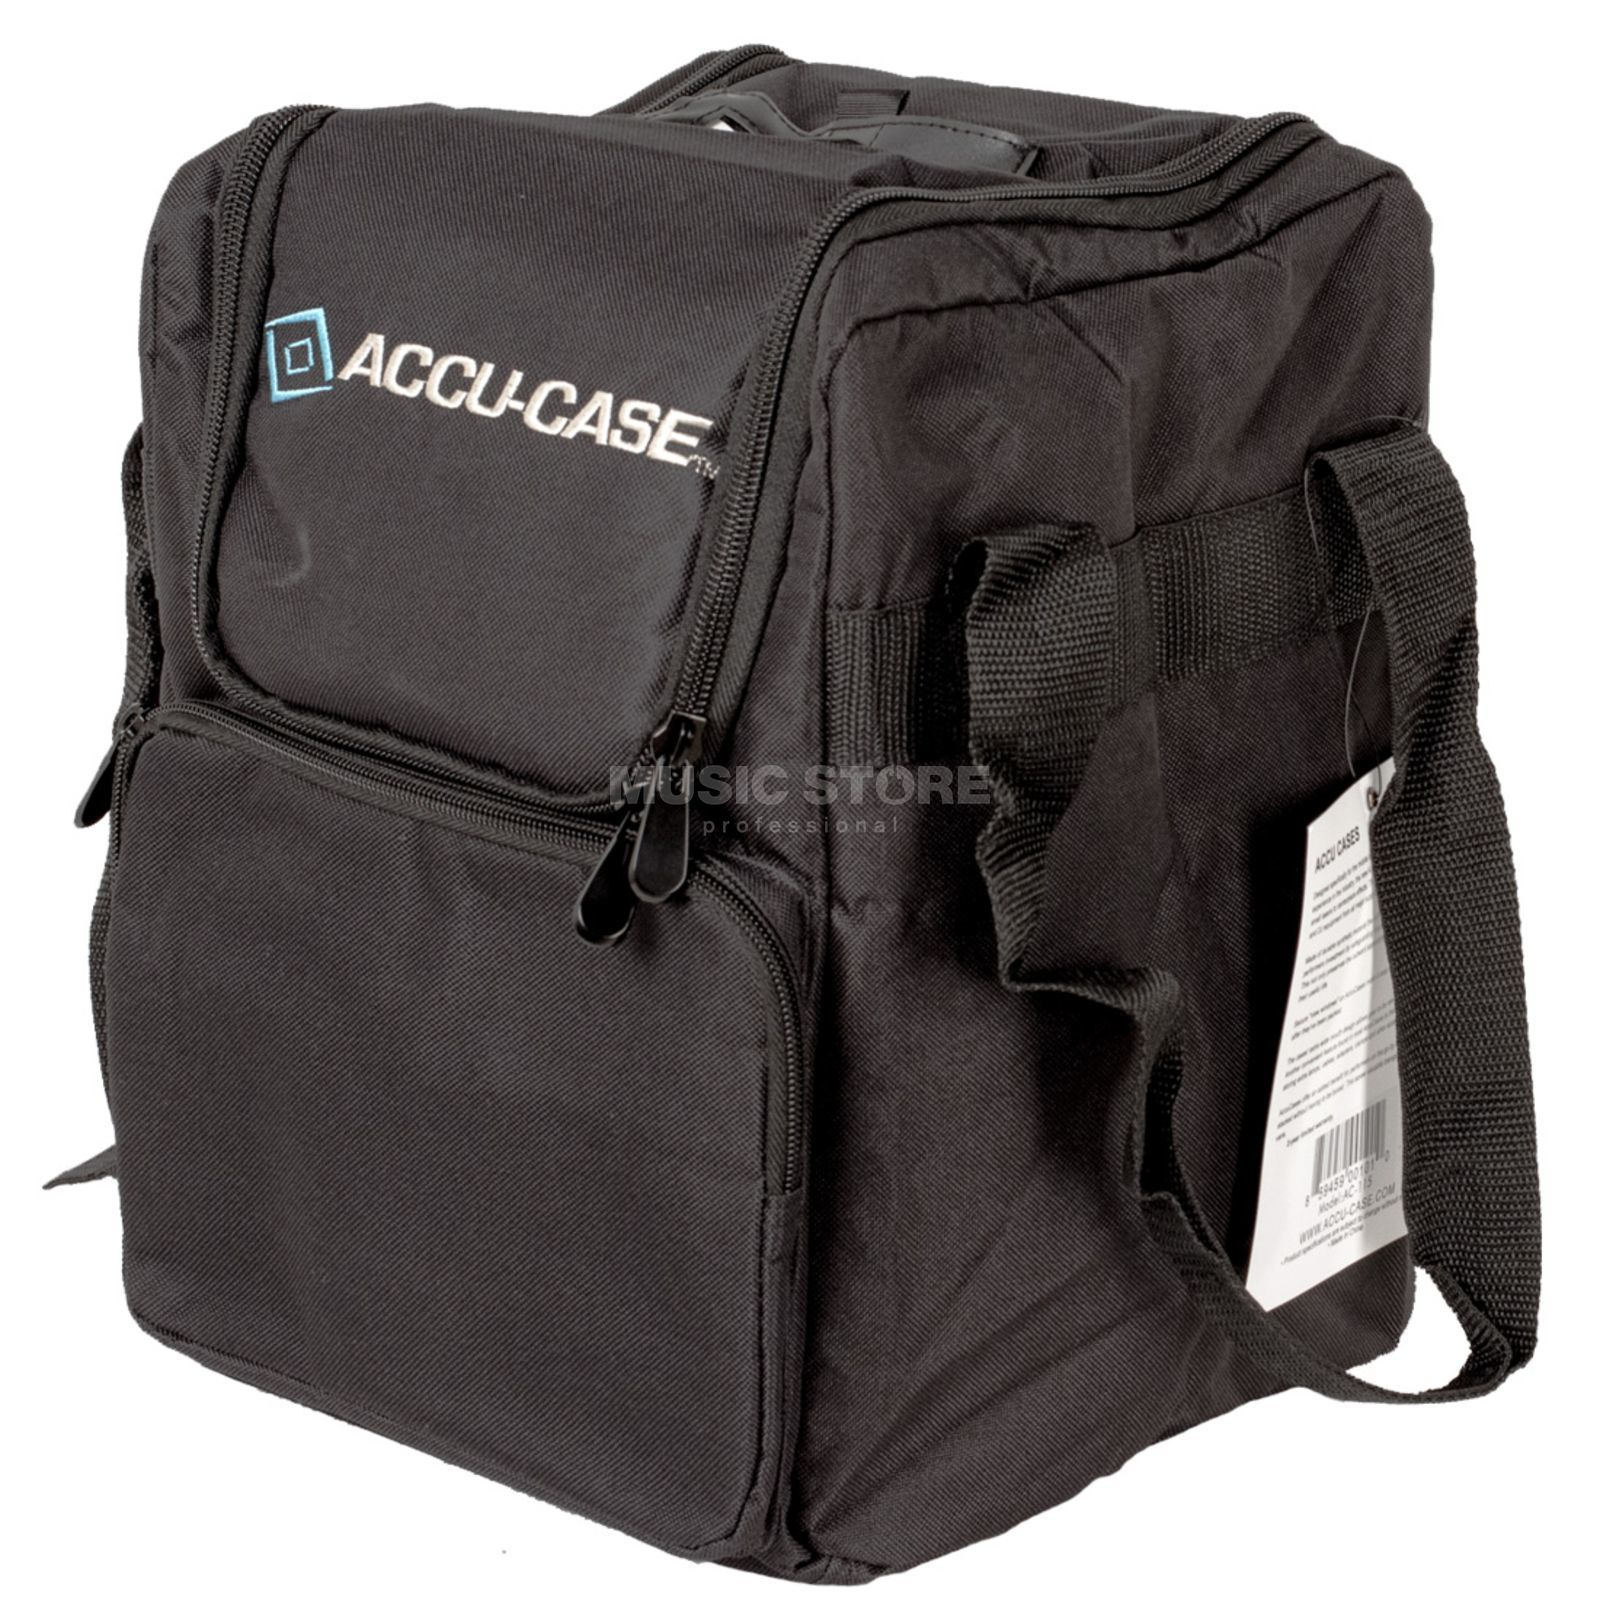 Accu Case ASC-AC-115 Transport Bag 230 x 230 x 310 mm Produktbillede